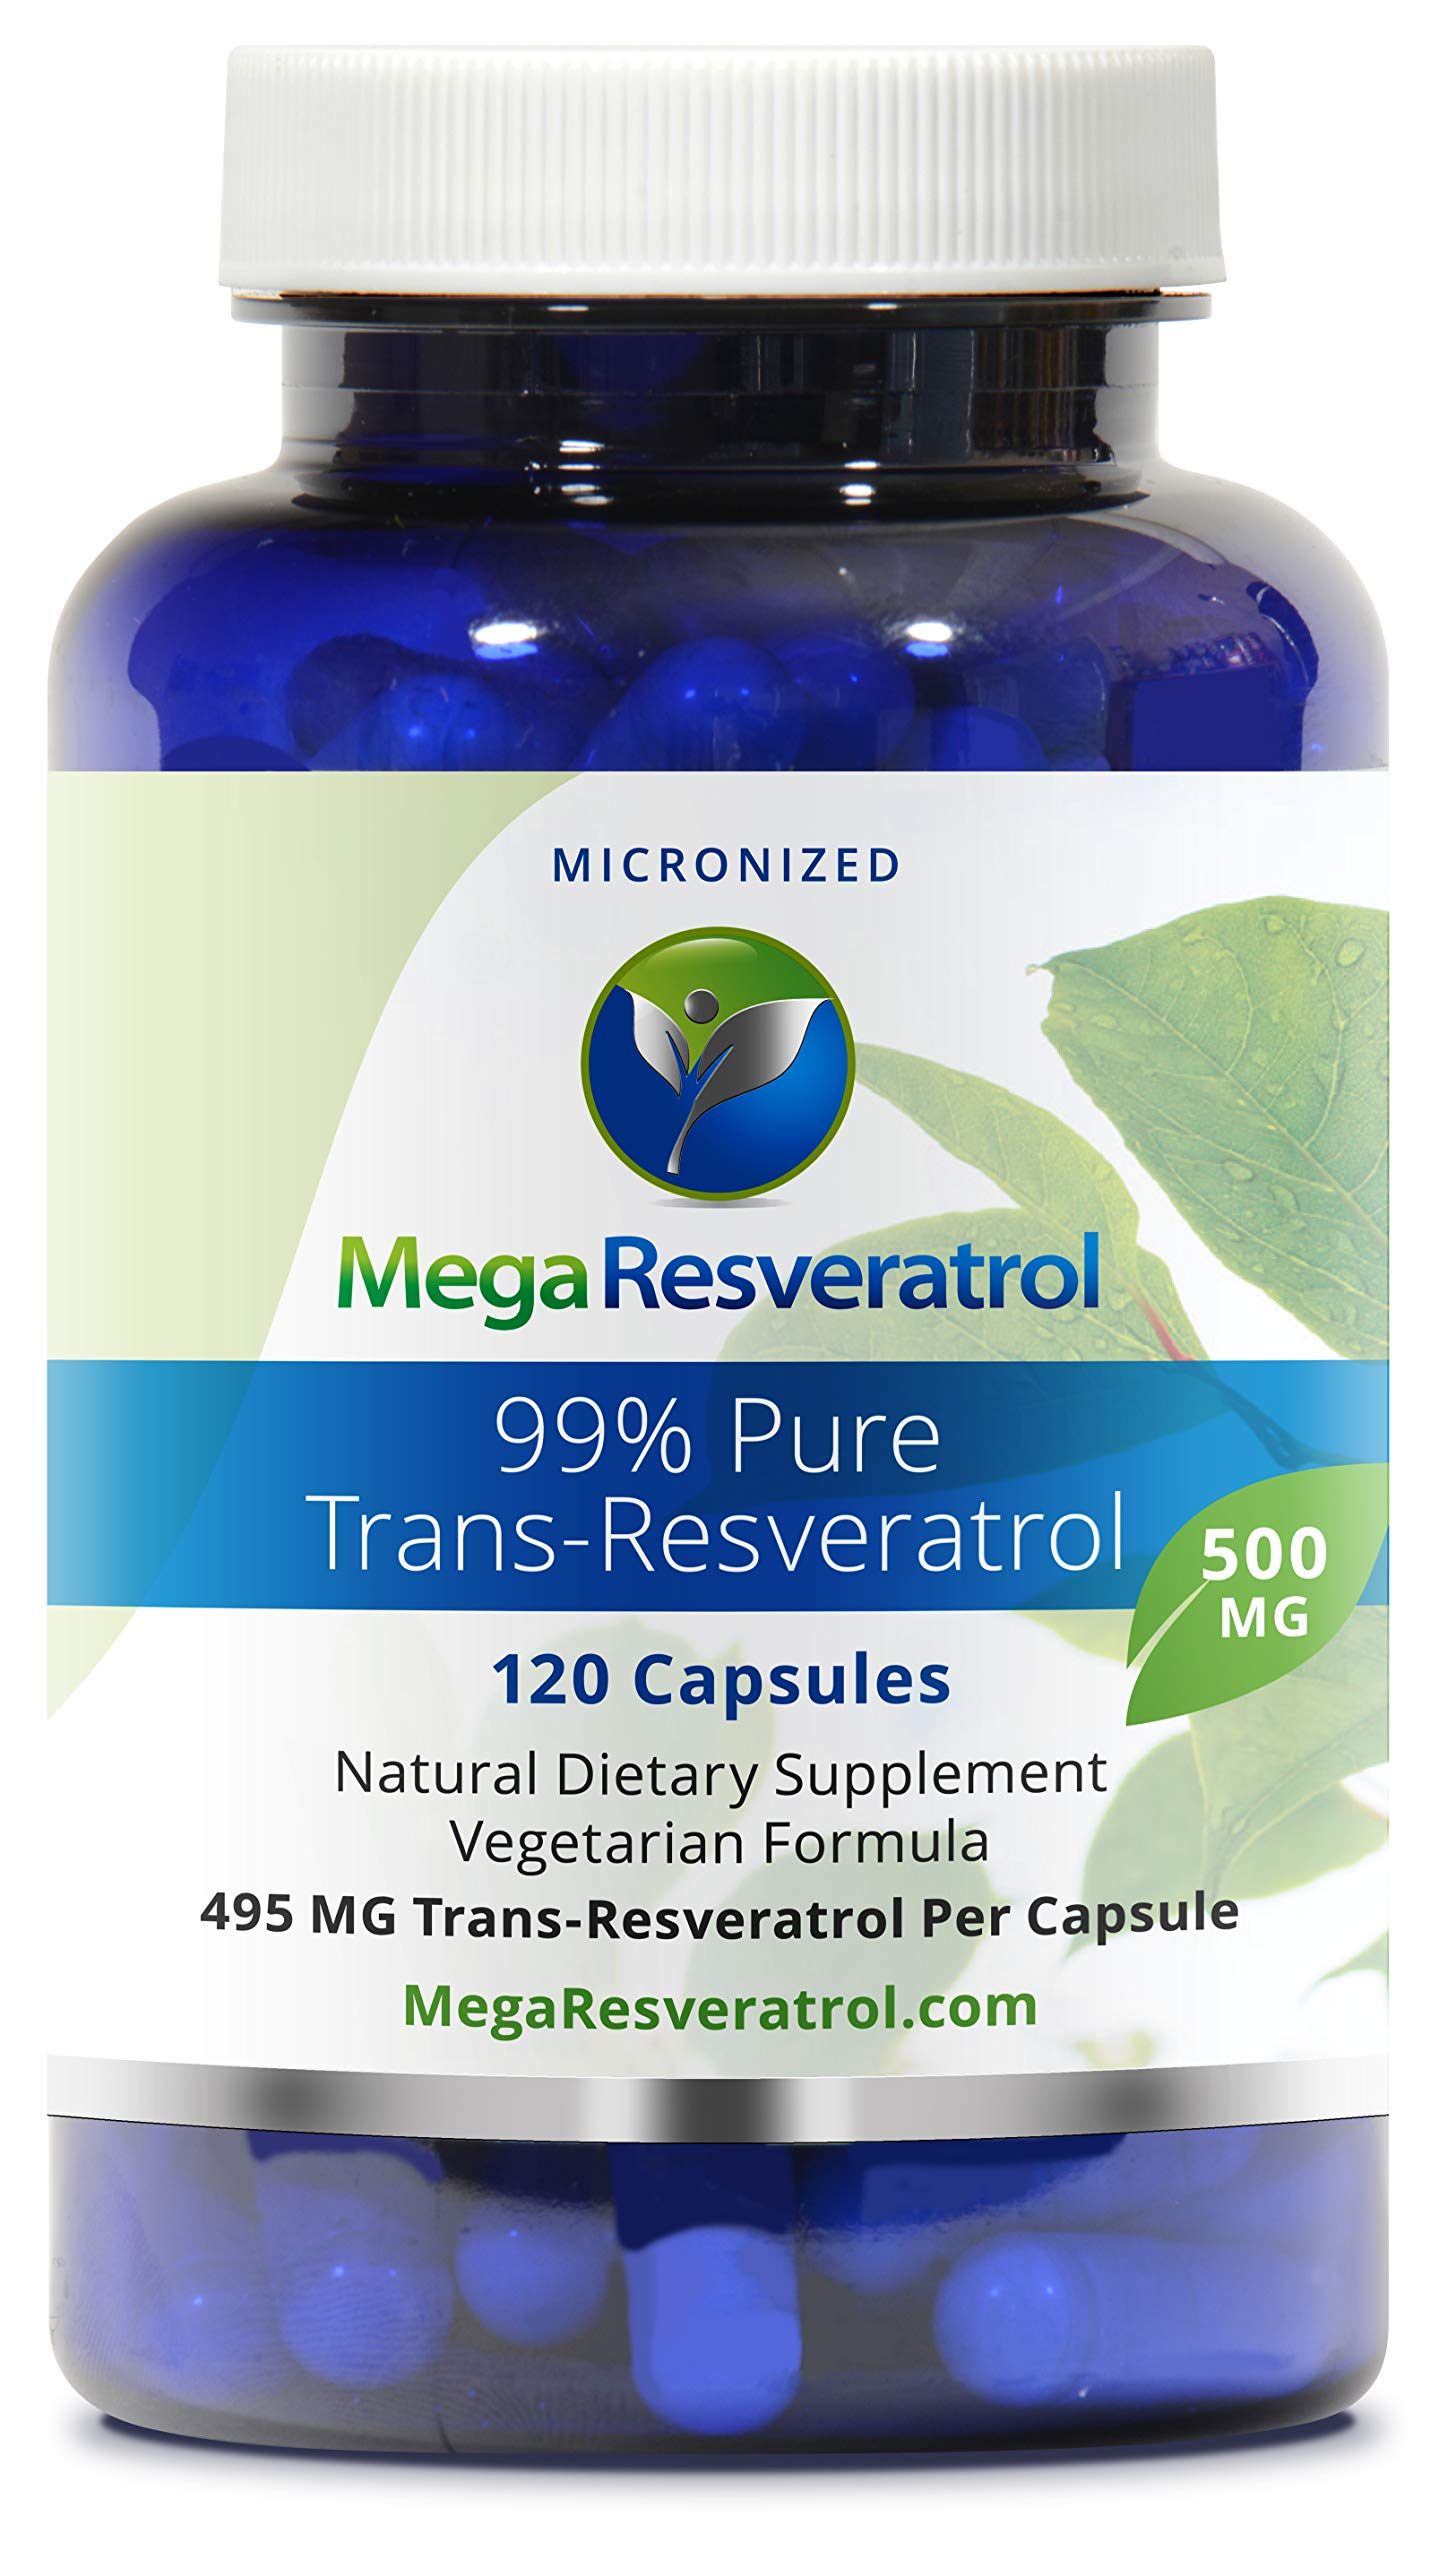 Mega Resveratrol, Pharmaceutical Grade, 99% Pure Micronized Trans-Resveratrol, 120 Vegetarian Capsules, 500 mg per Capsule. Purity Certified. Absolutely no excipients (aka Inactive Ingredients) Added by Mega Resveratrol